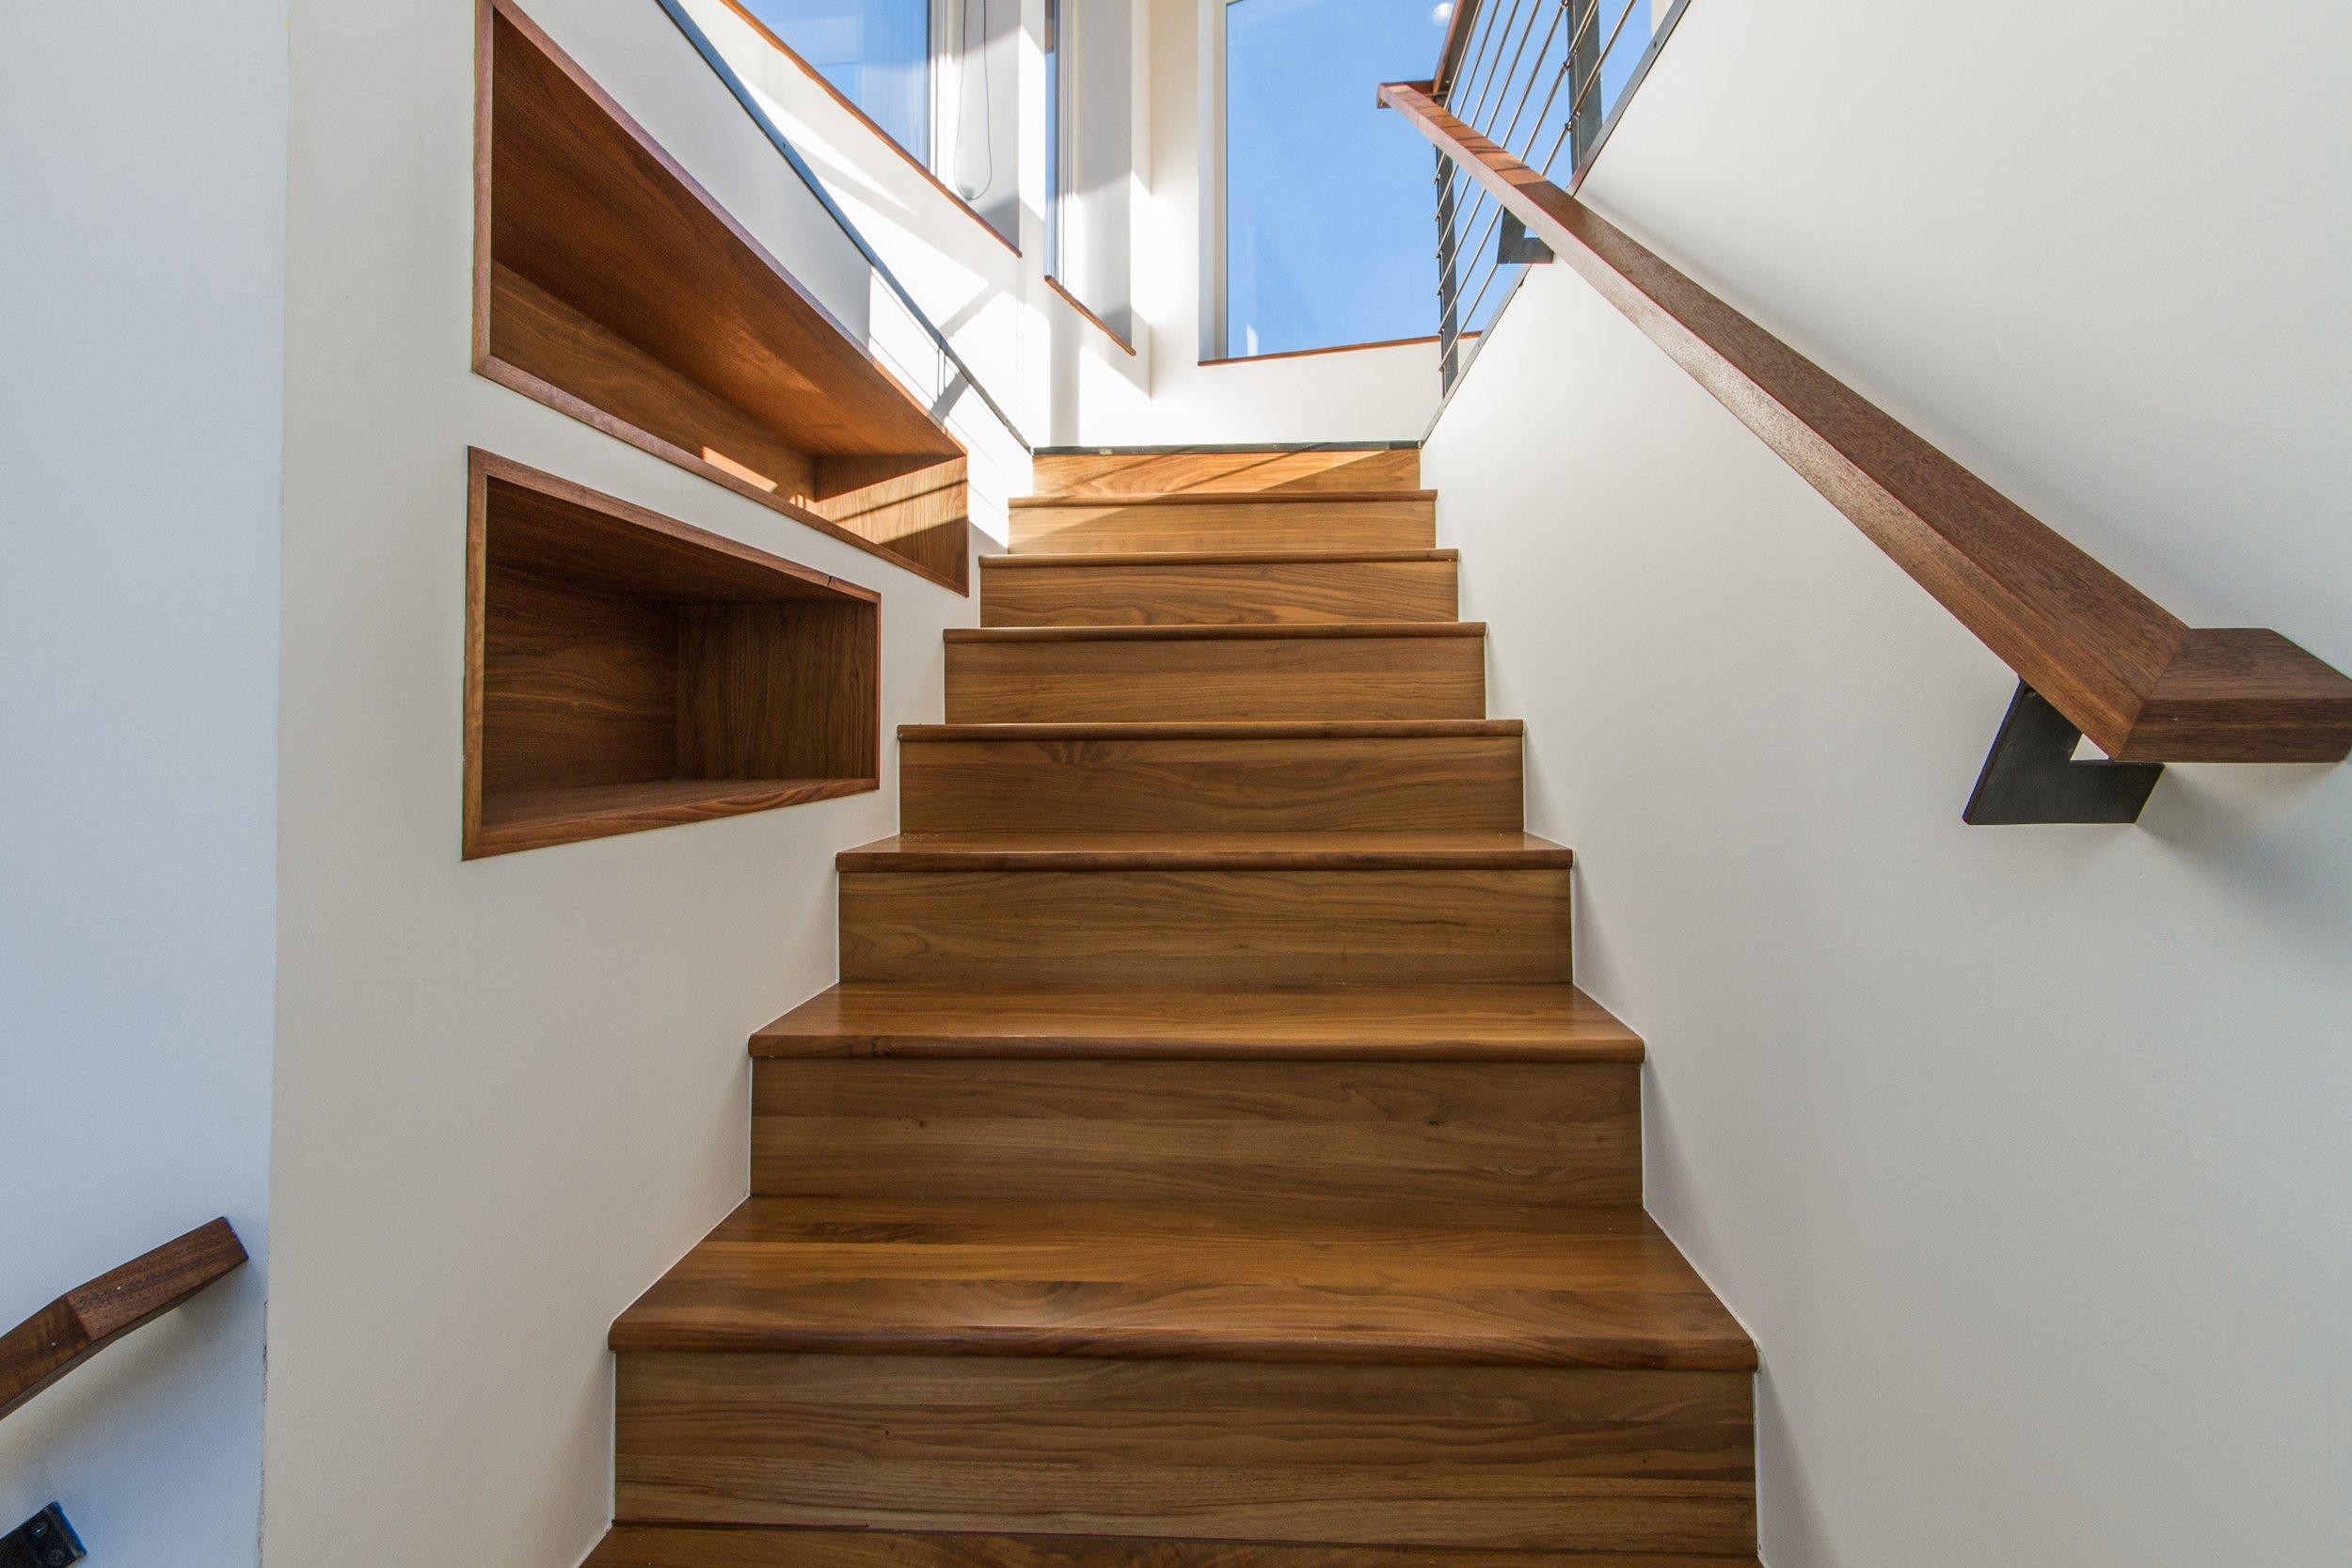 Staircase_high_2882513.jpg